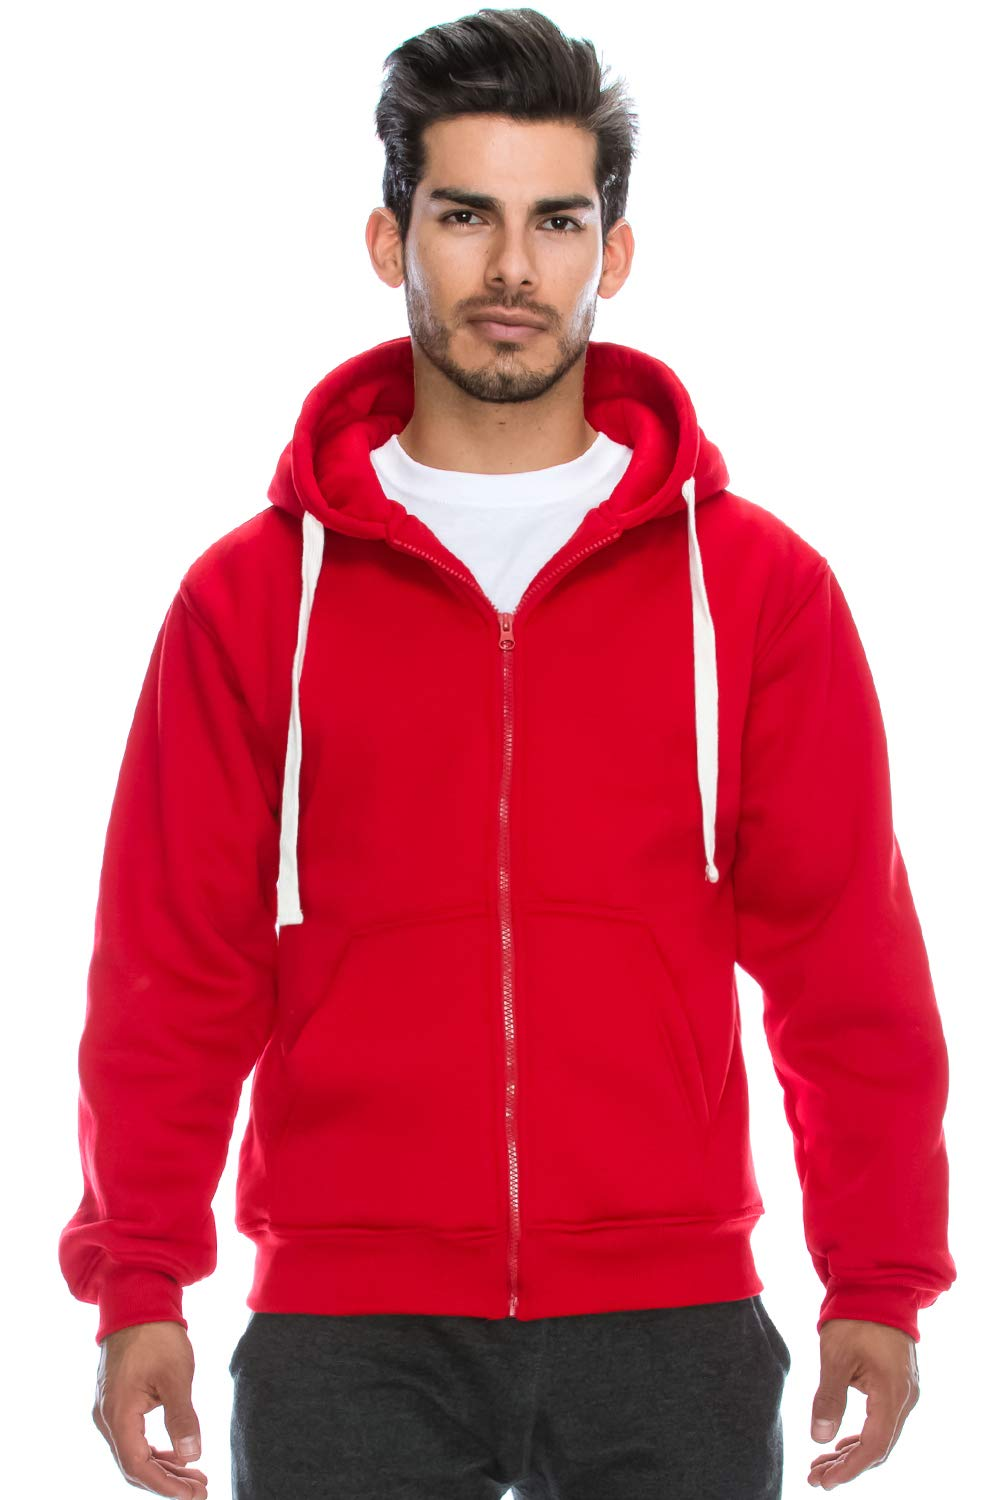 JC DISTRO Plus Size Hipster Hip Hop Basic Heavy Weight Zip-Up RED Hoodie Jacket 5XL